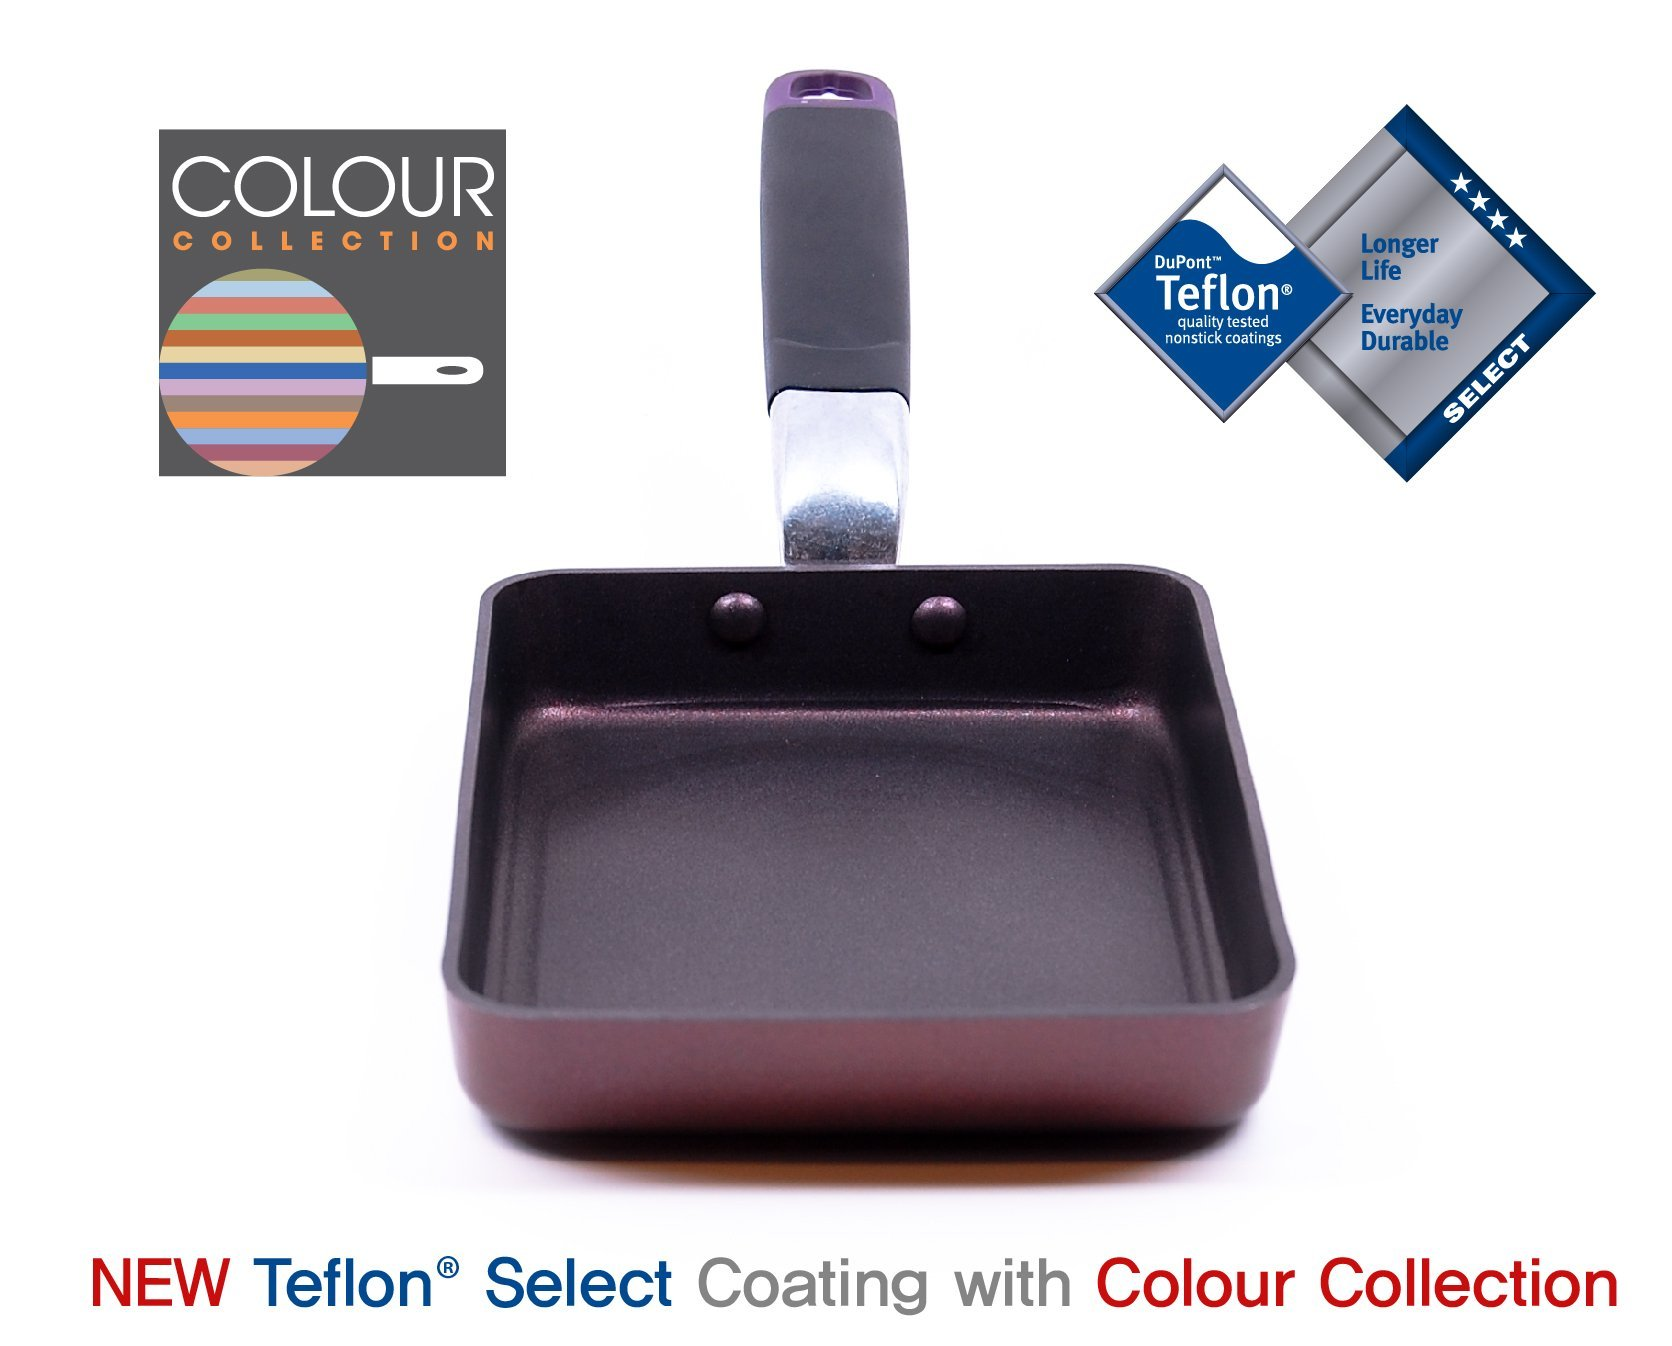 TeChef - Tamagoyaki Japanese Omelette Pan/Egg Pan, Coated with Dupont Teflon Select - Colour Collection/Non-stick Coating (PFOA Free) by TECHEF (Image #2)